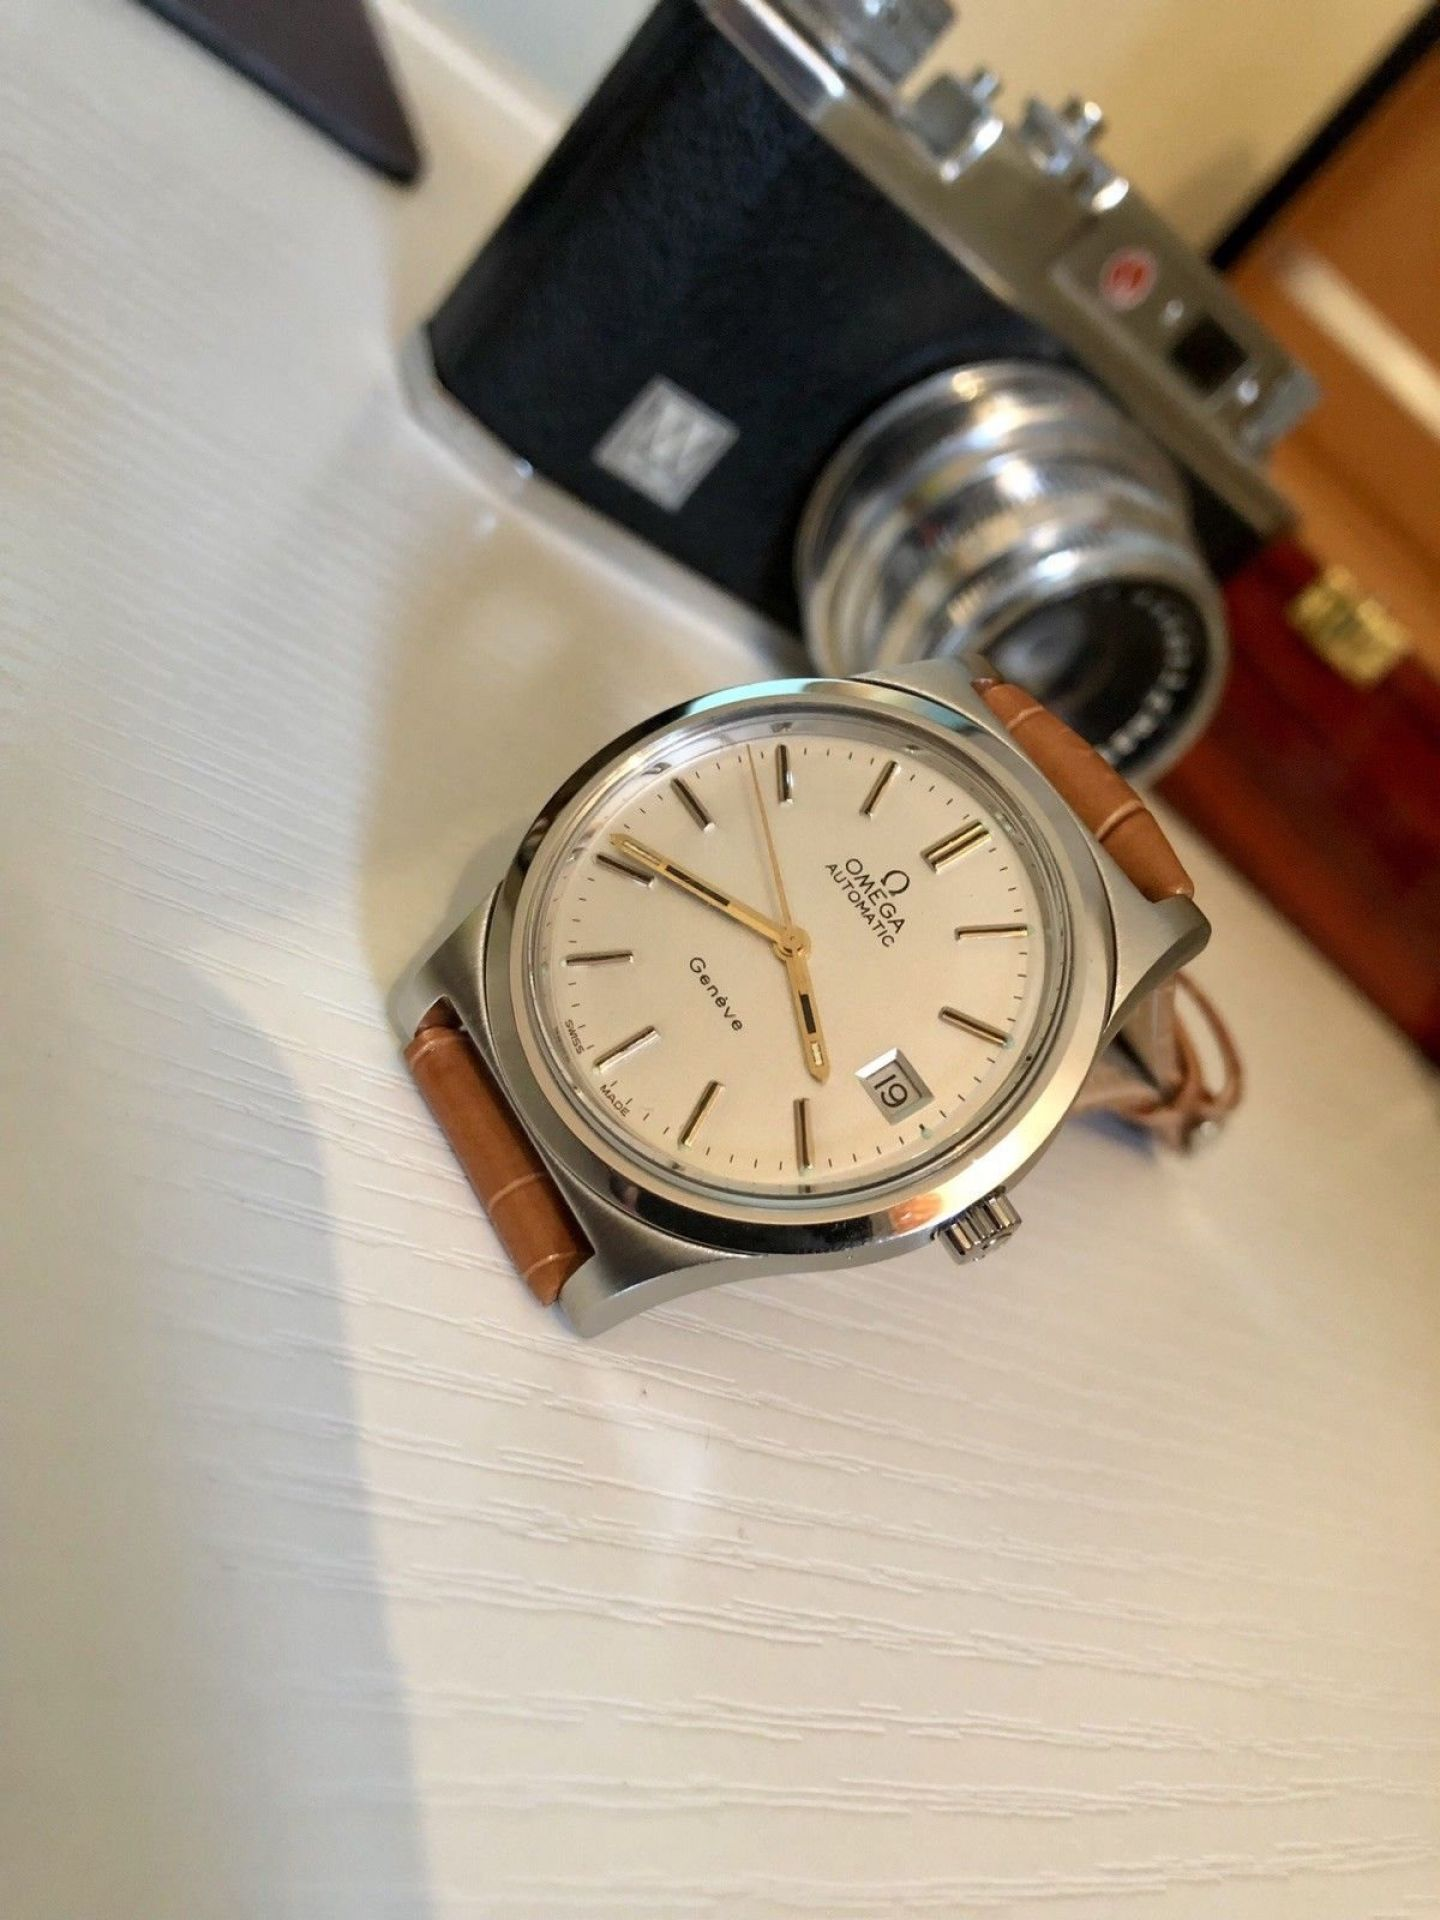 OMEGA MENS GENEVE VINTAGE WATCH CAL 1012 AUTOMATIC MECHANICAL GENTS WRISTWATCH